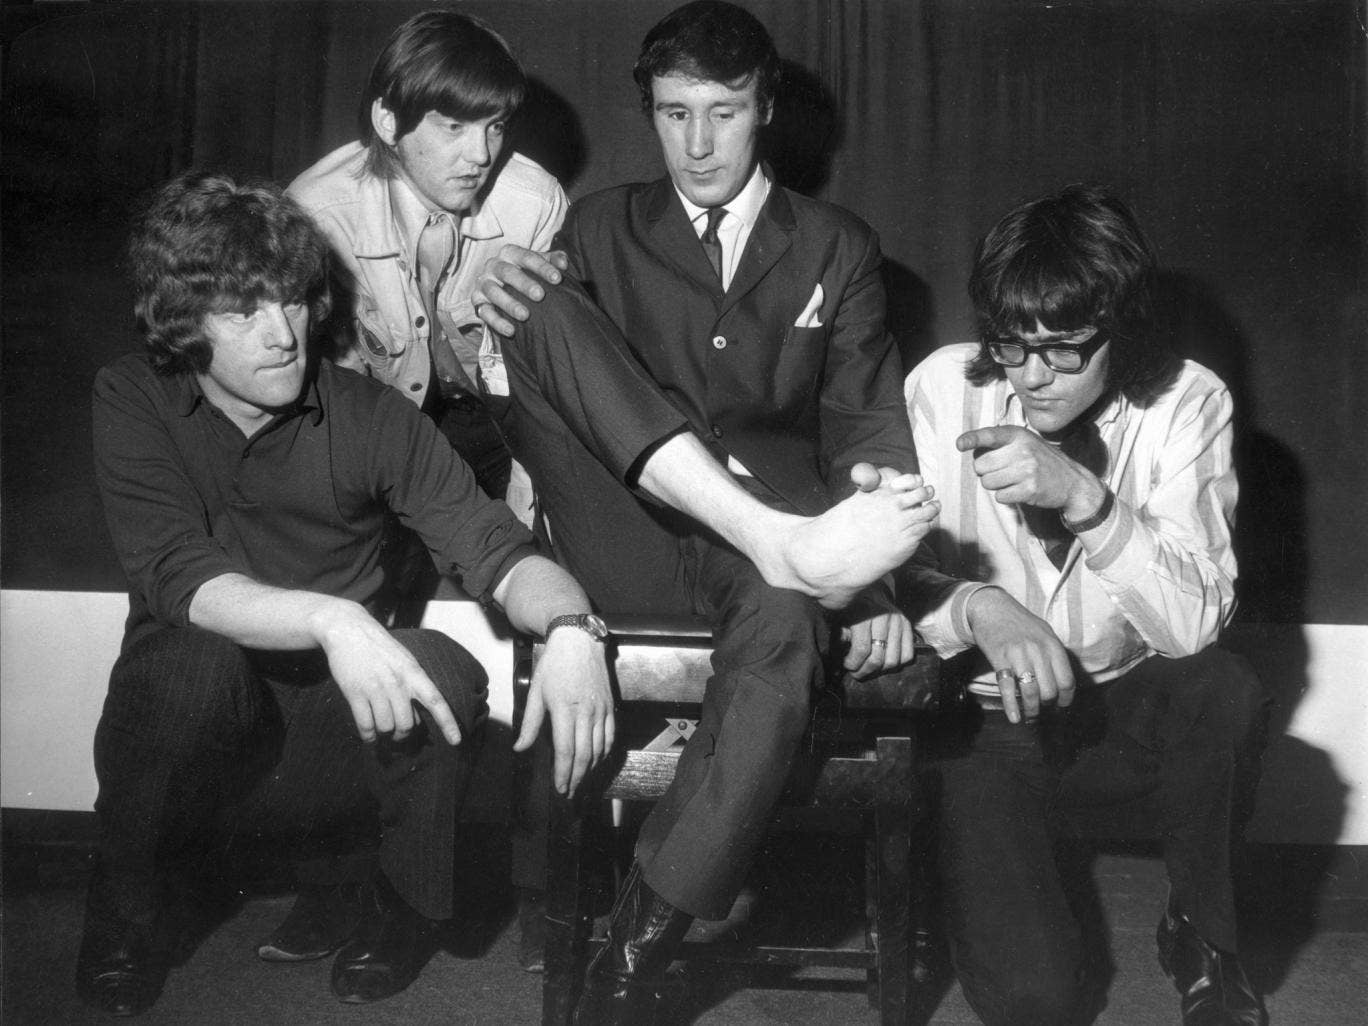 Lee's band in 1968, including Ian Hunter, far left, inspect the foot with which Lee played the piano